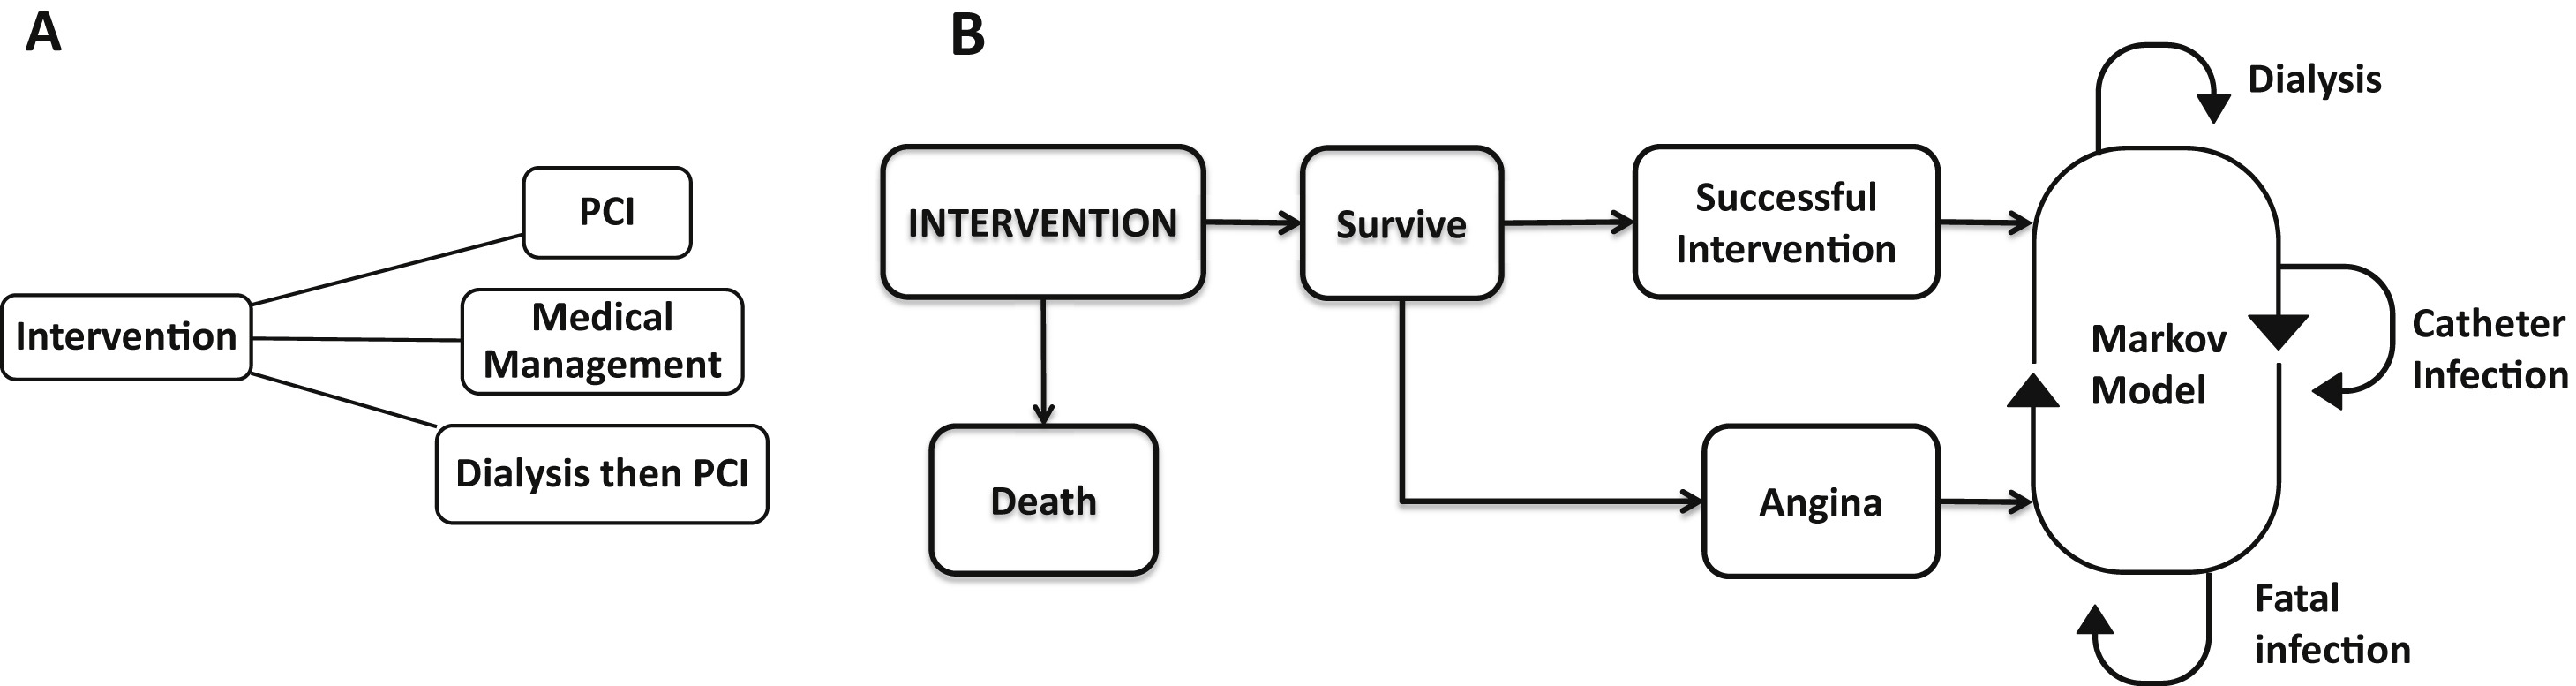 pci first or preemptive dialysis first approach in ckd patients  dialysis catheter infection patho diagram #12